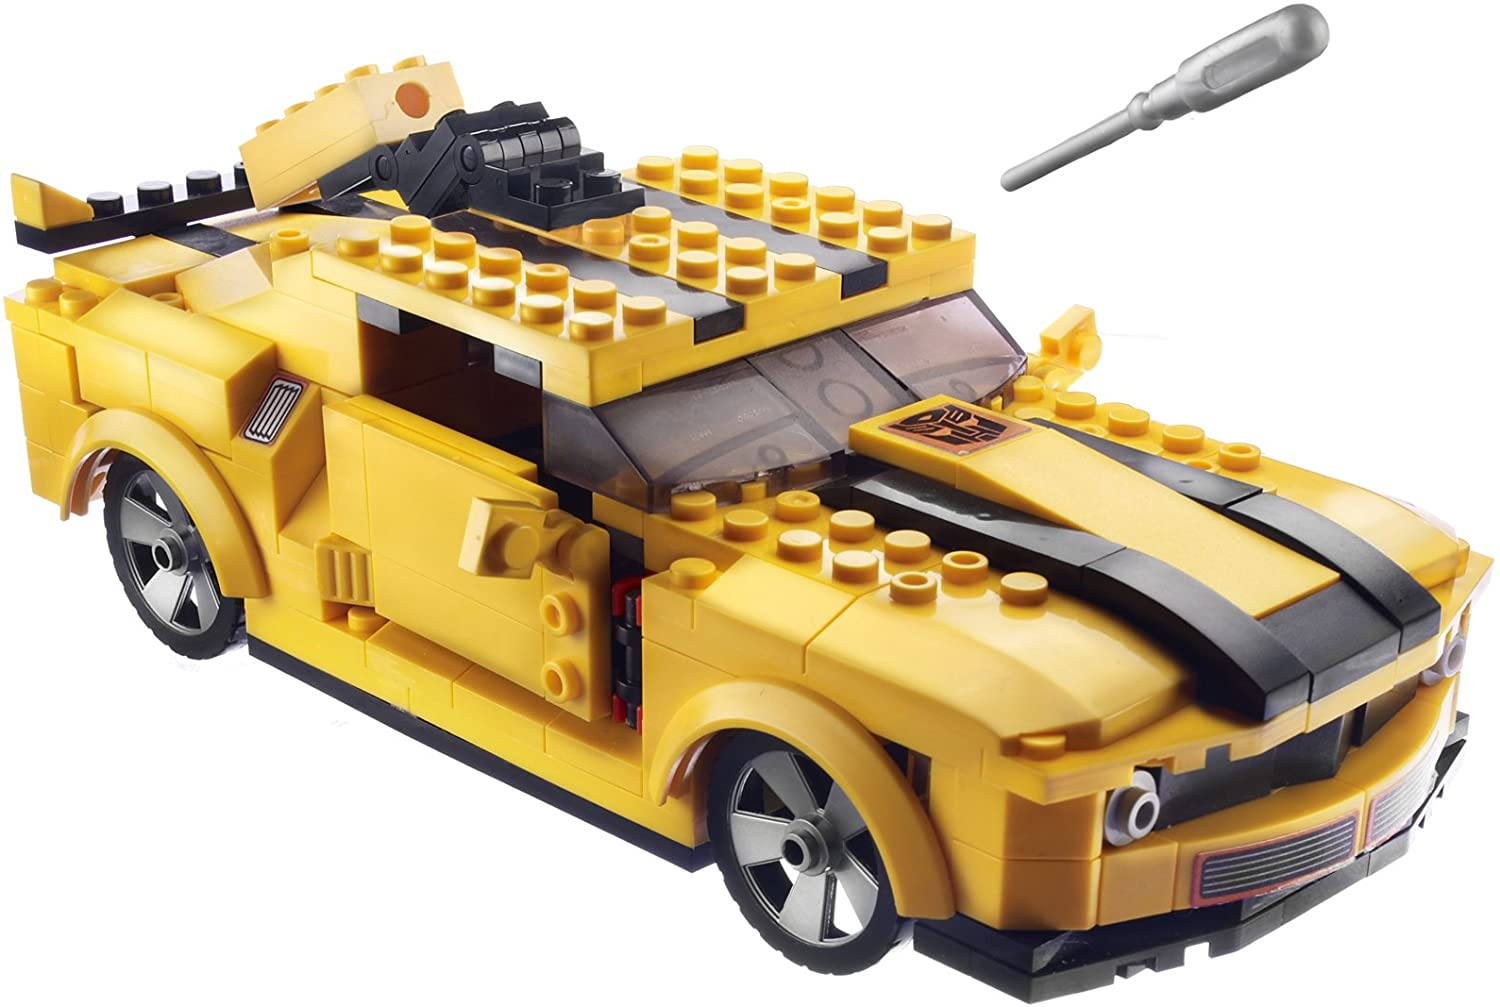 KRE-O Transformers - Bumblebee (30421) Building Toy